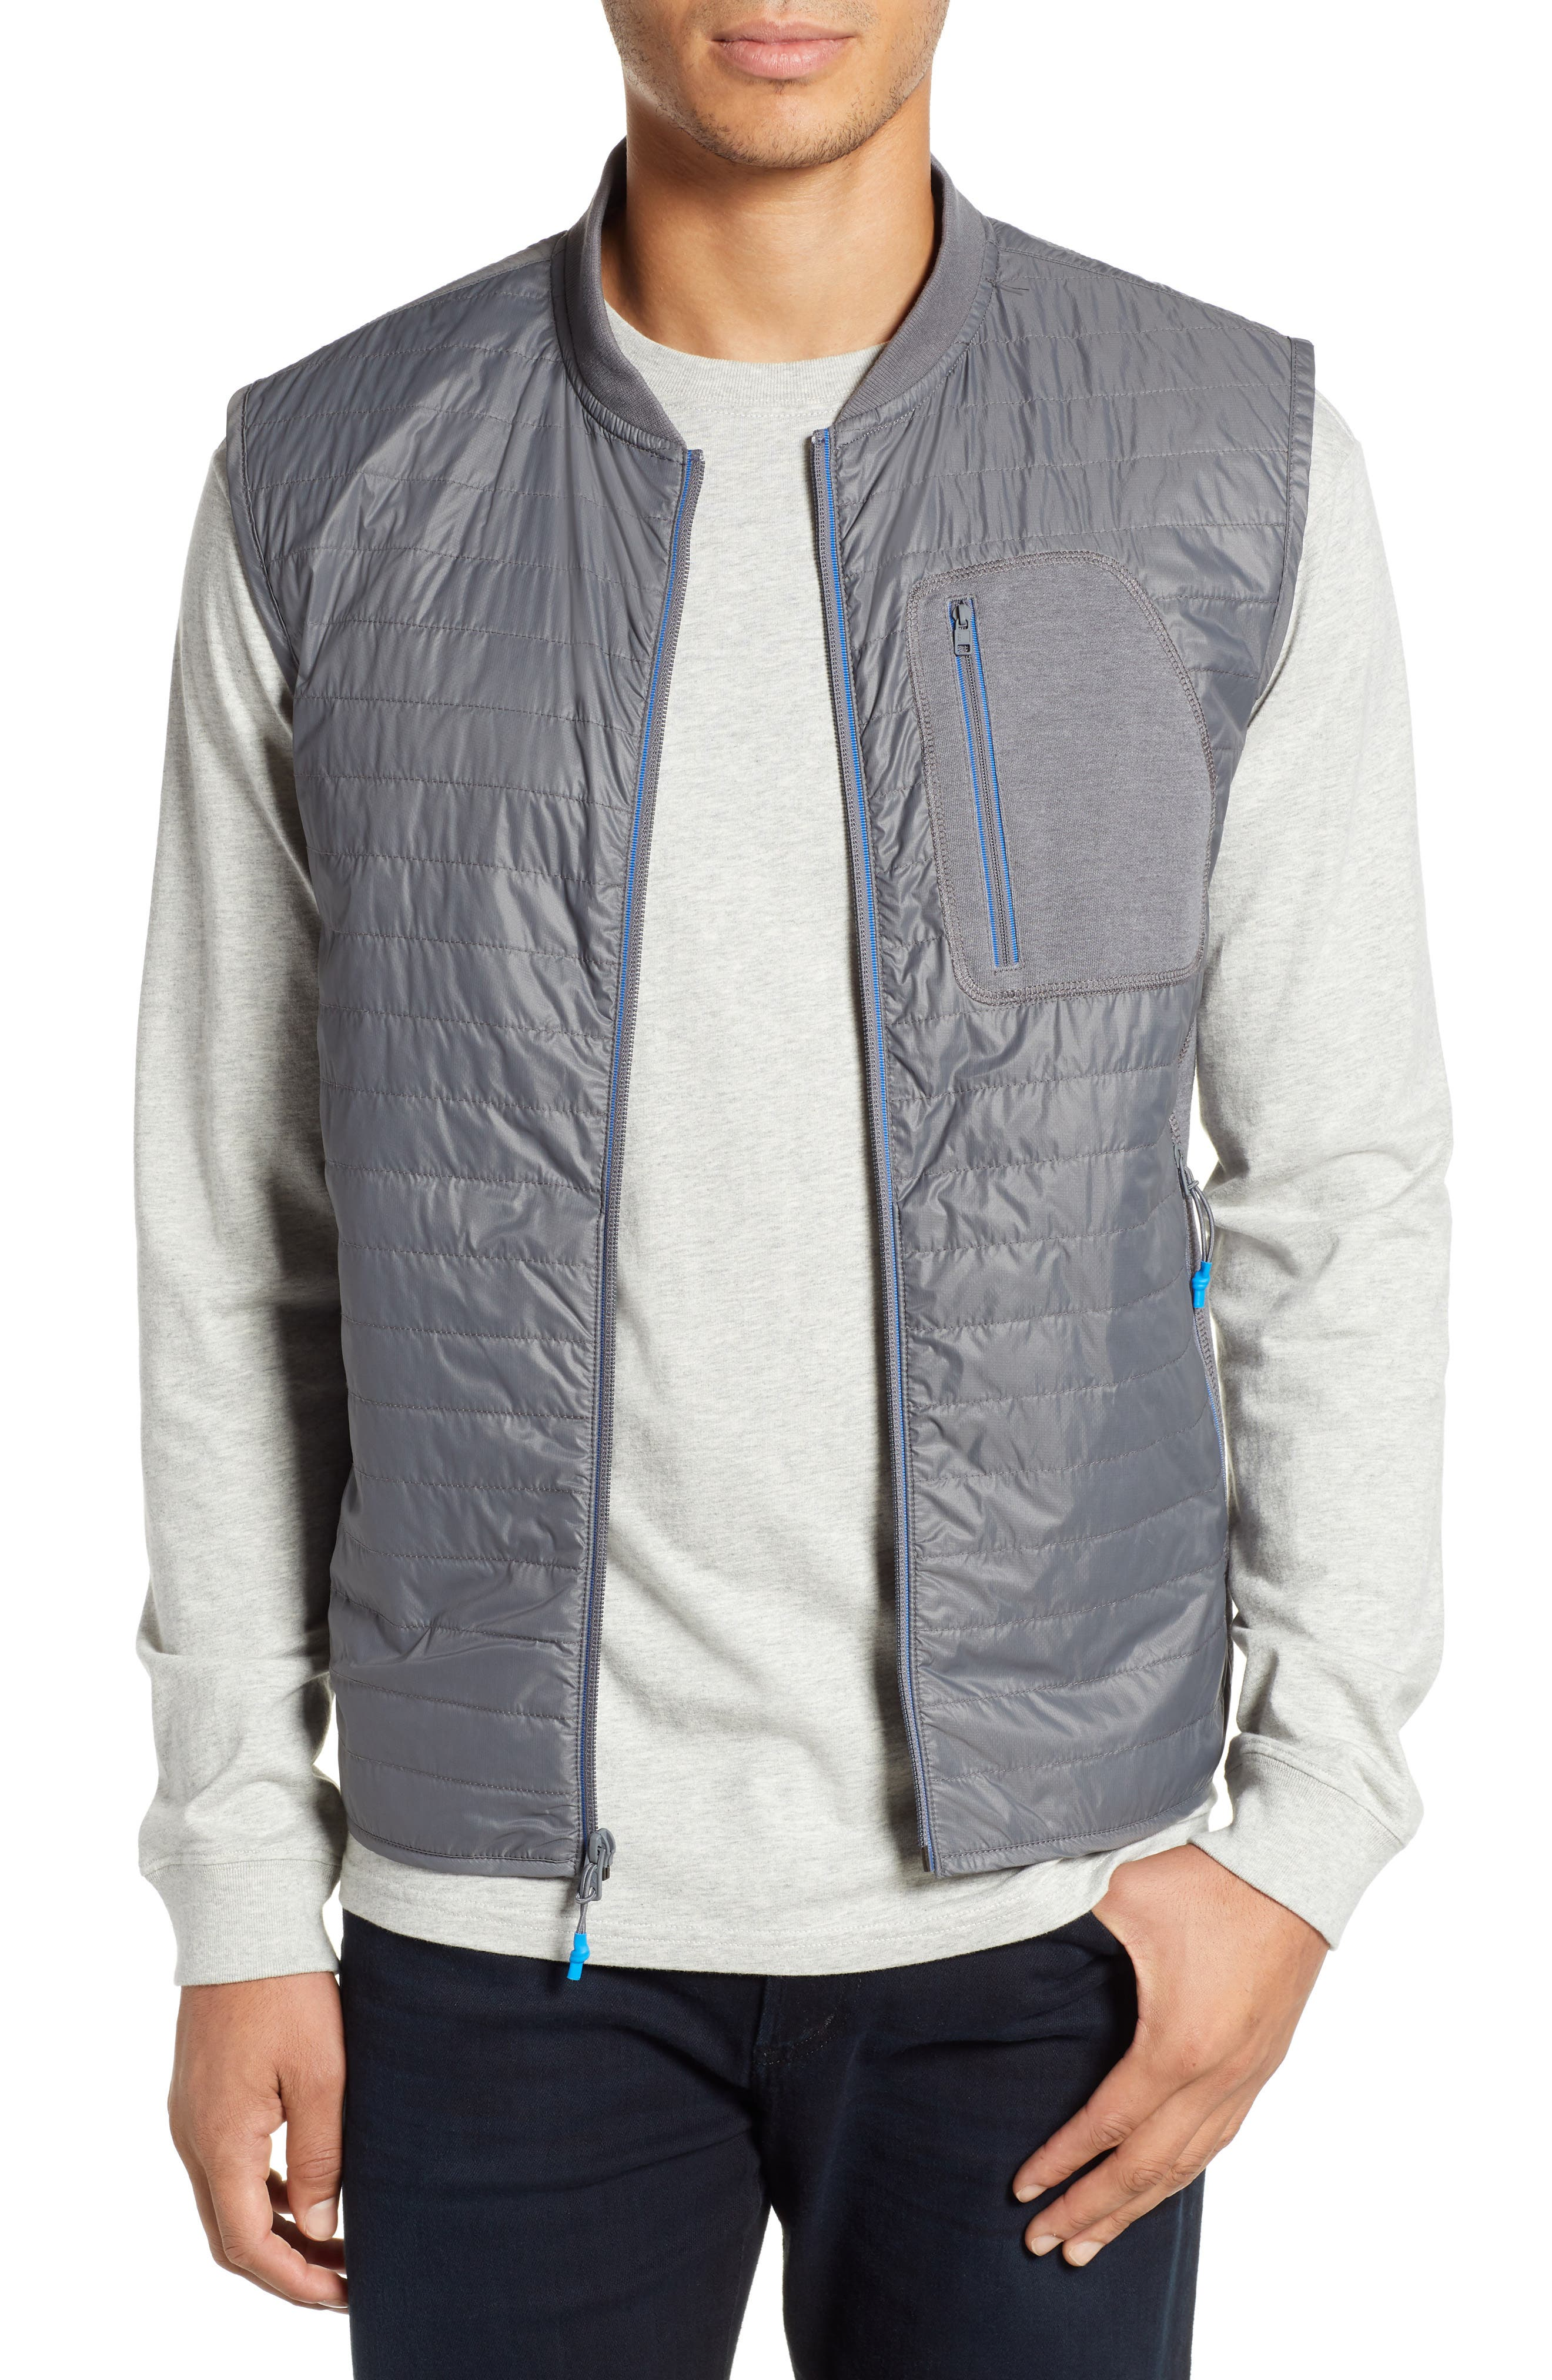 Forrest Creek Bomber Vest,                         Main,                         color, SMOKED PEARL